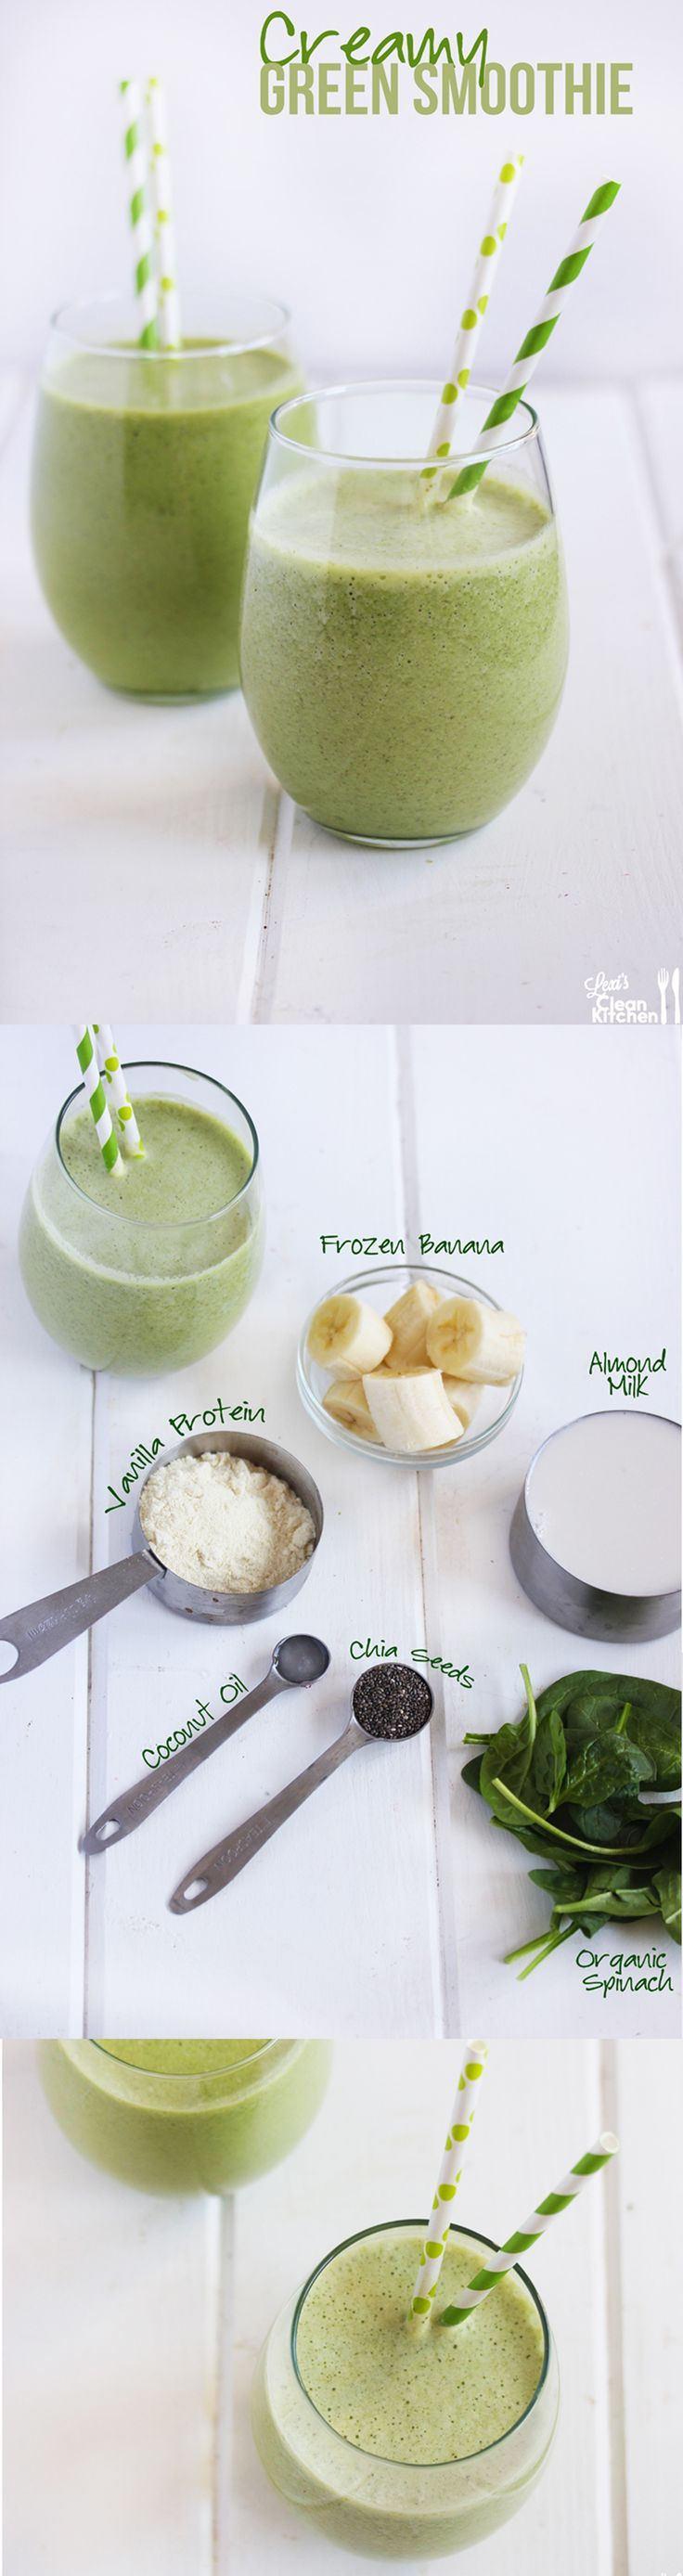 Creamy Green Protein Smoothie: Healthy, gluten-free, dairy-free, and paleo-friendly